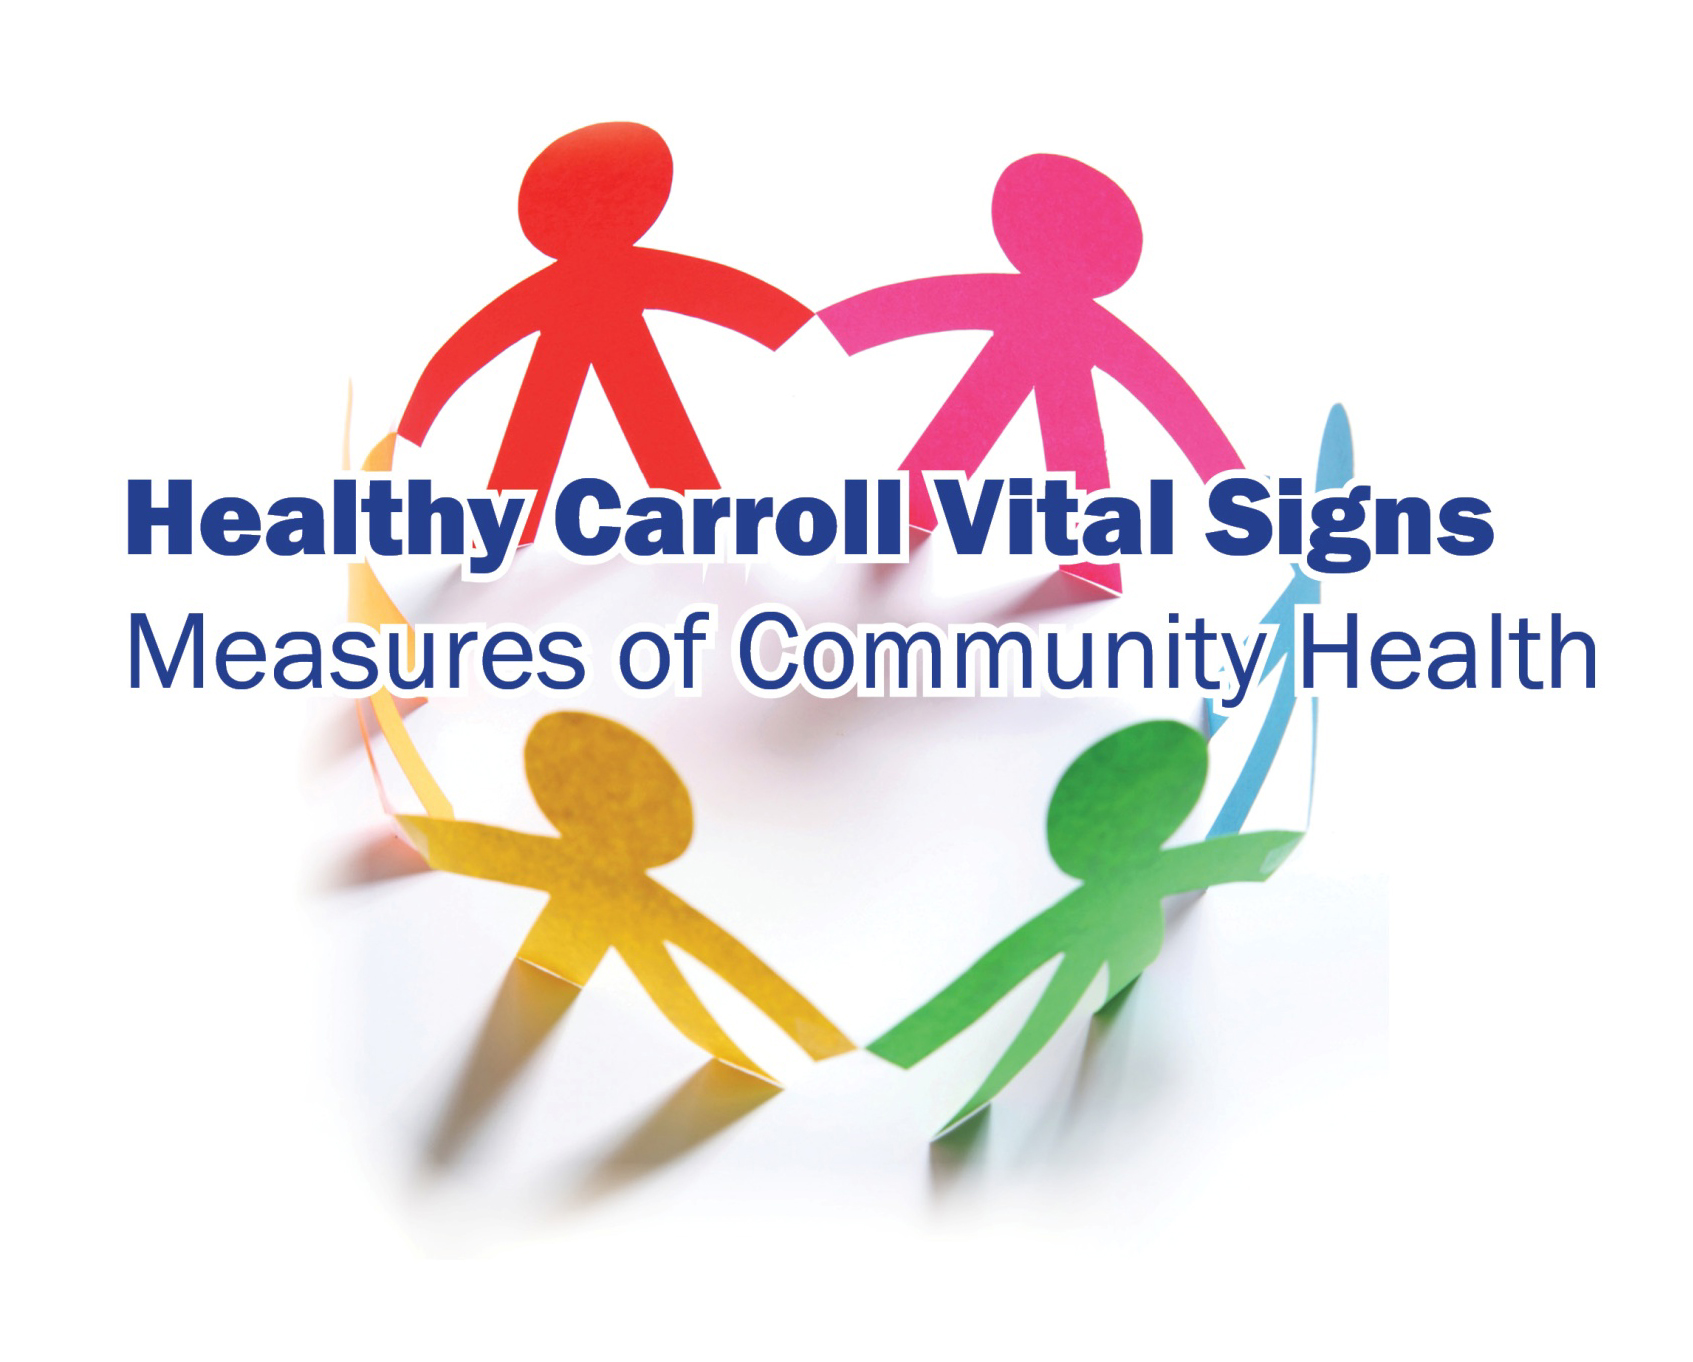 Healthy Carroll Vital Signs